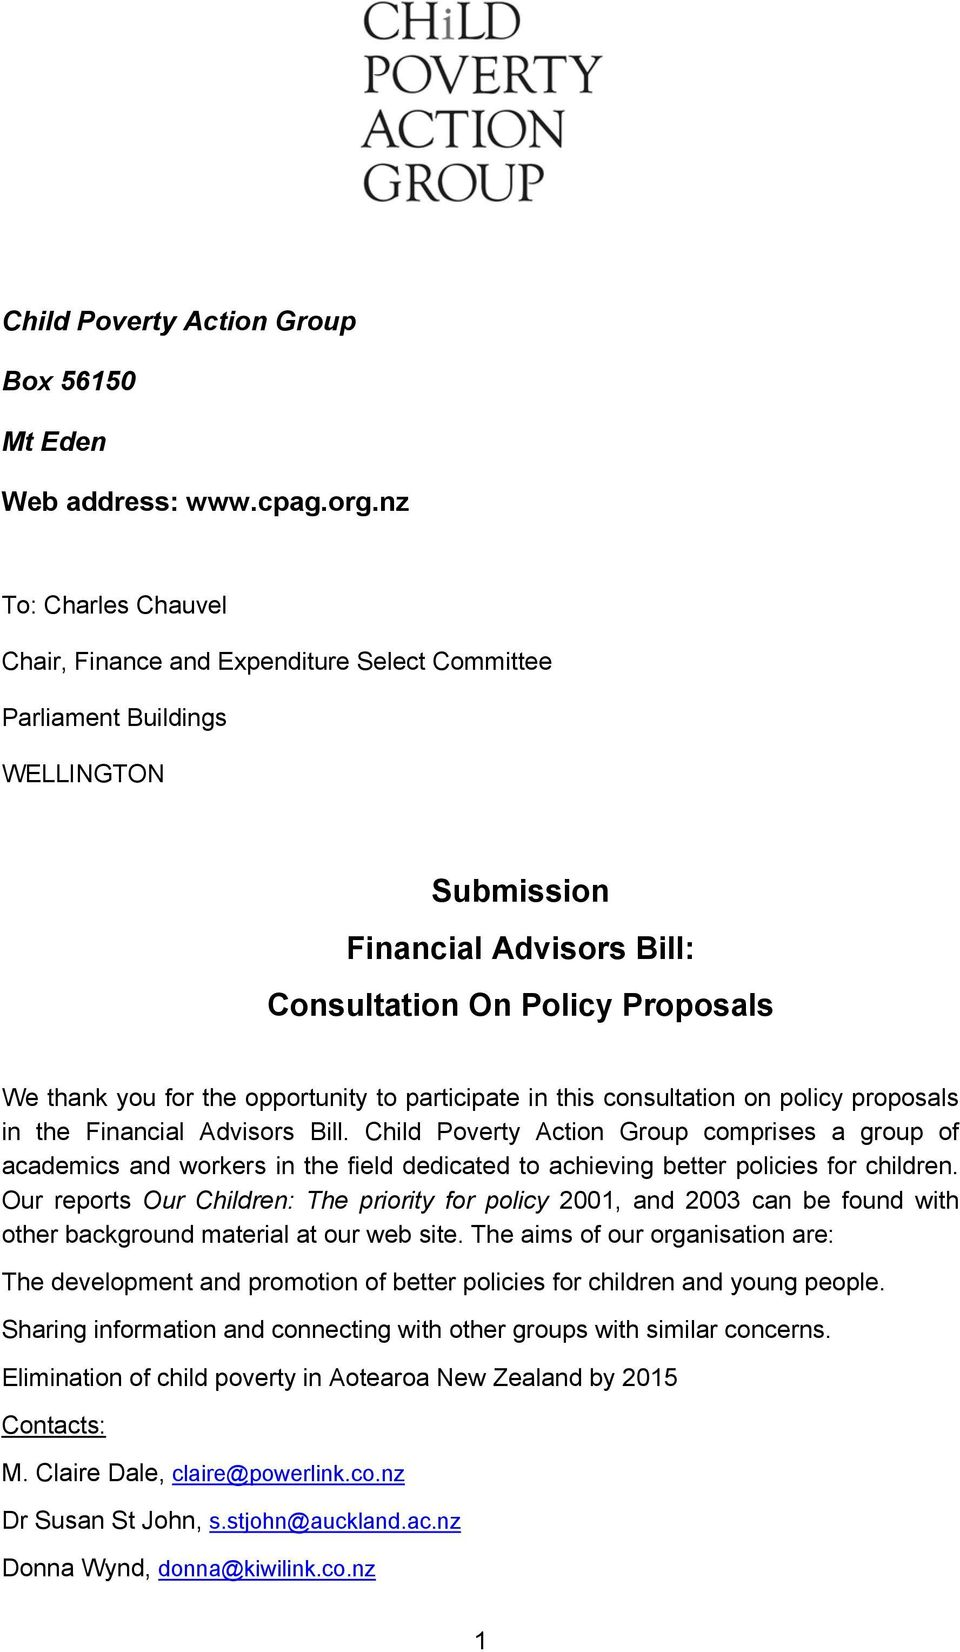 opportunity to participate in this consultation on policy proposals in the Financial Advisors Bill.